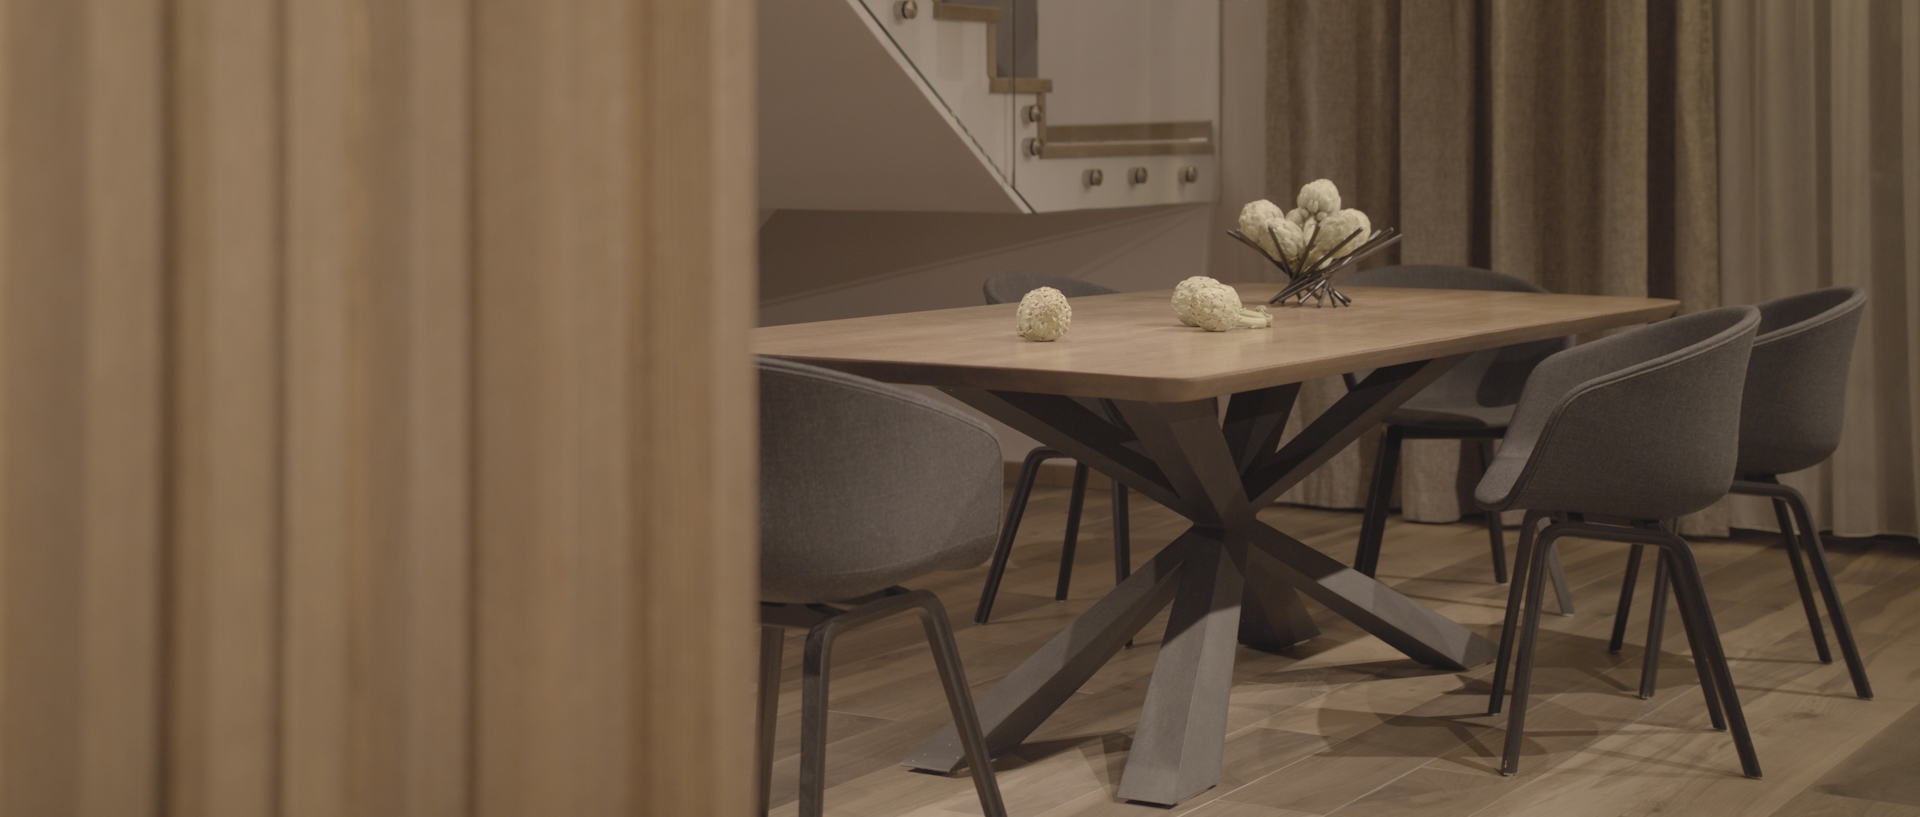 mario stoica design compass house commercial by popotam productions video agency before color grading